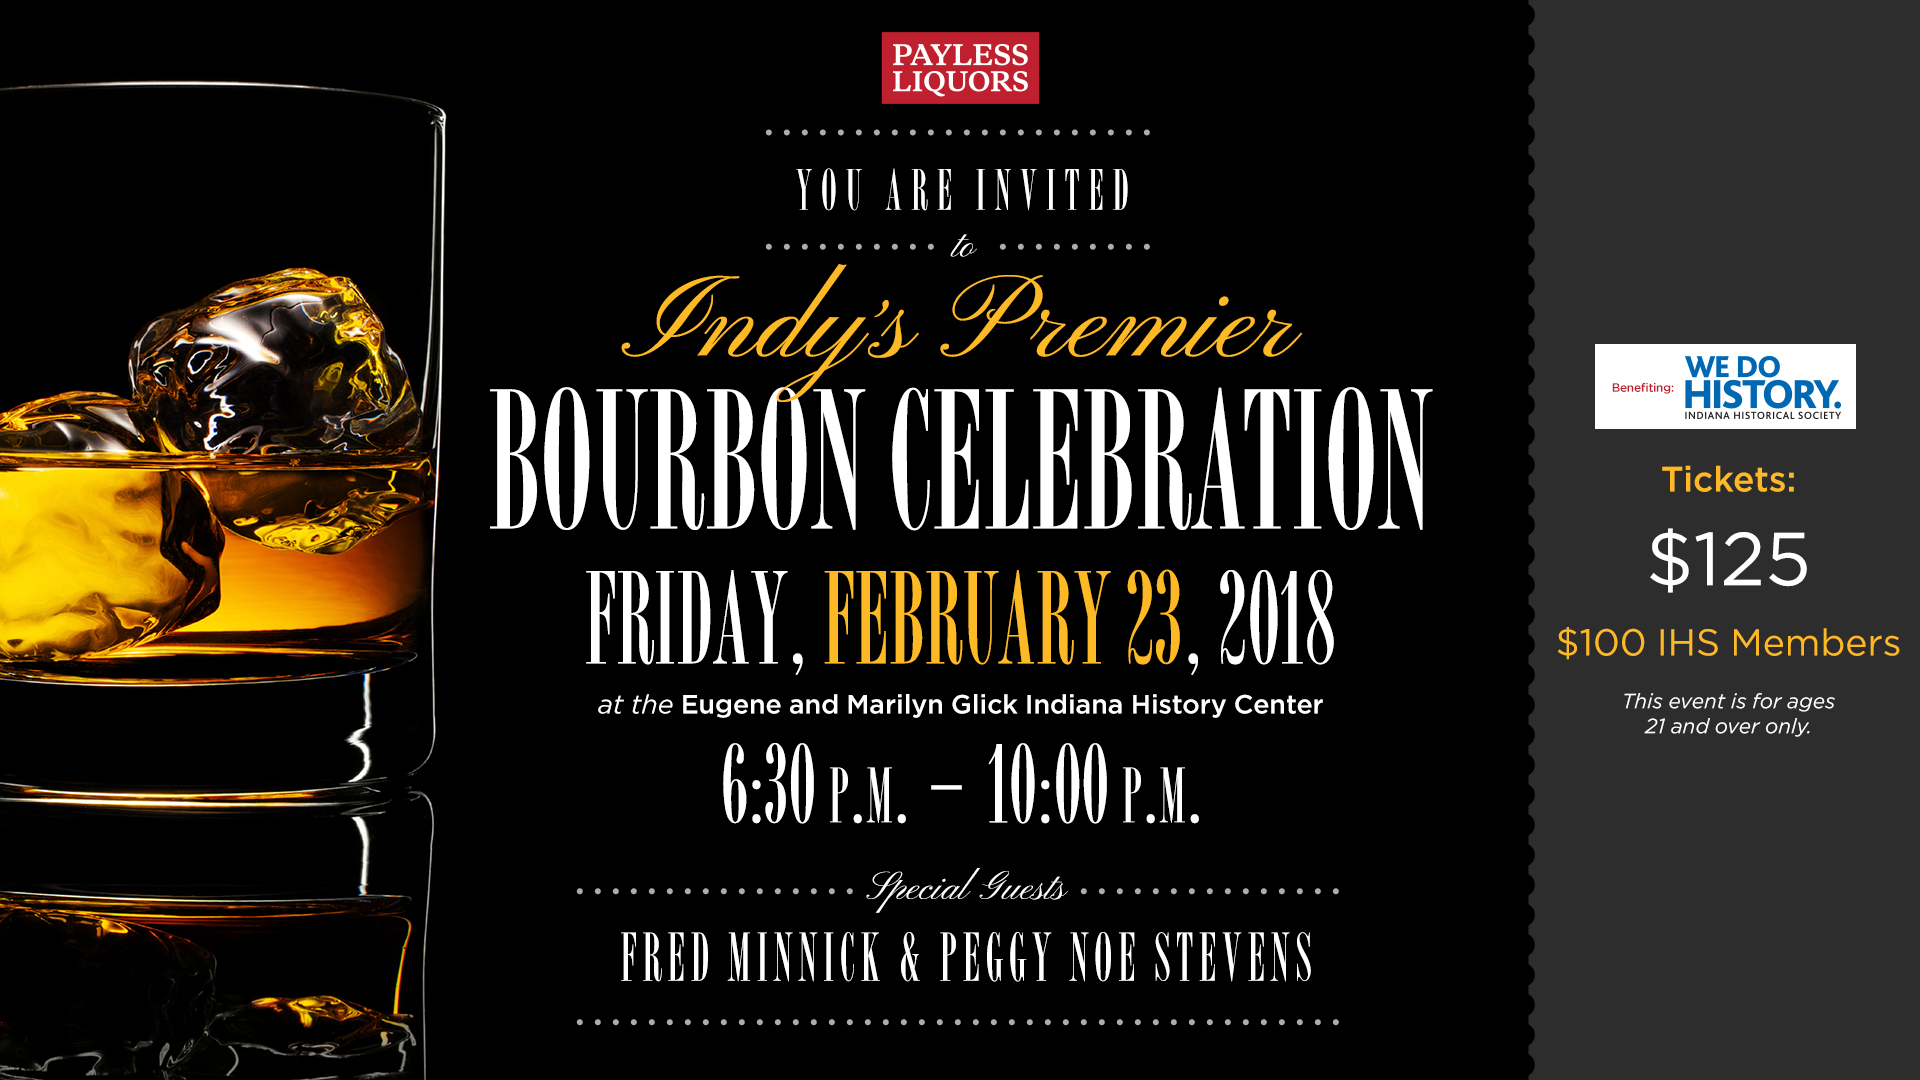 Indy's Premier Bourbon Celebration